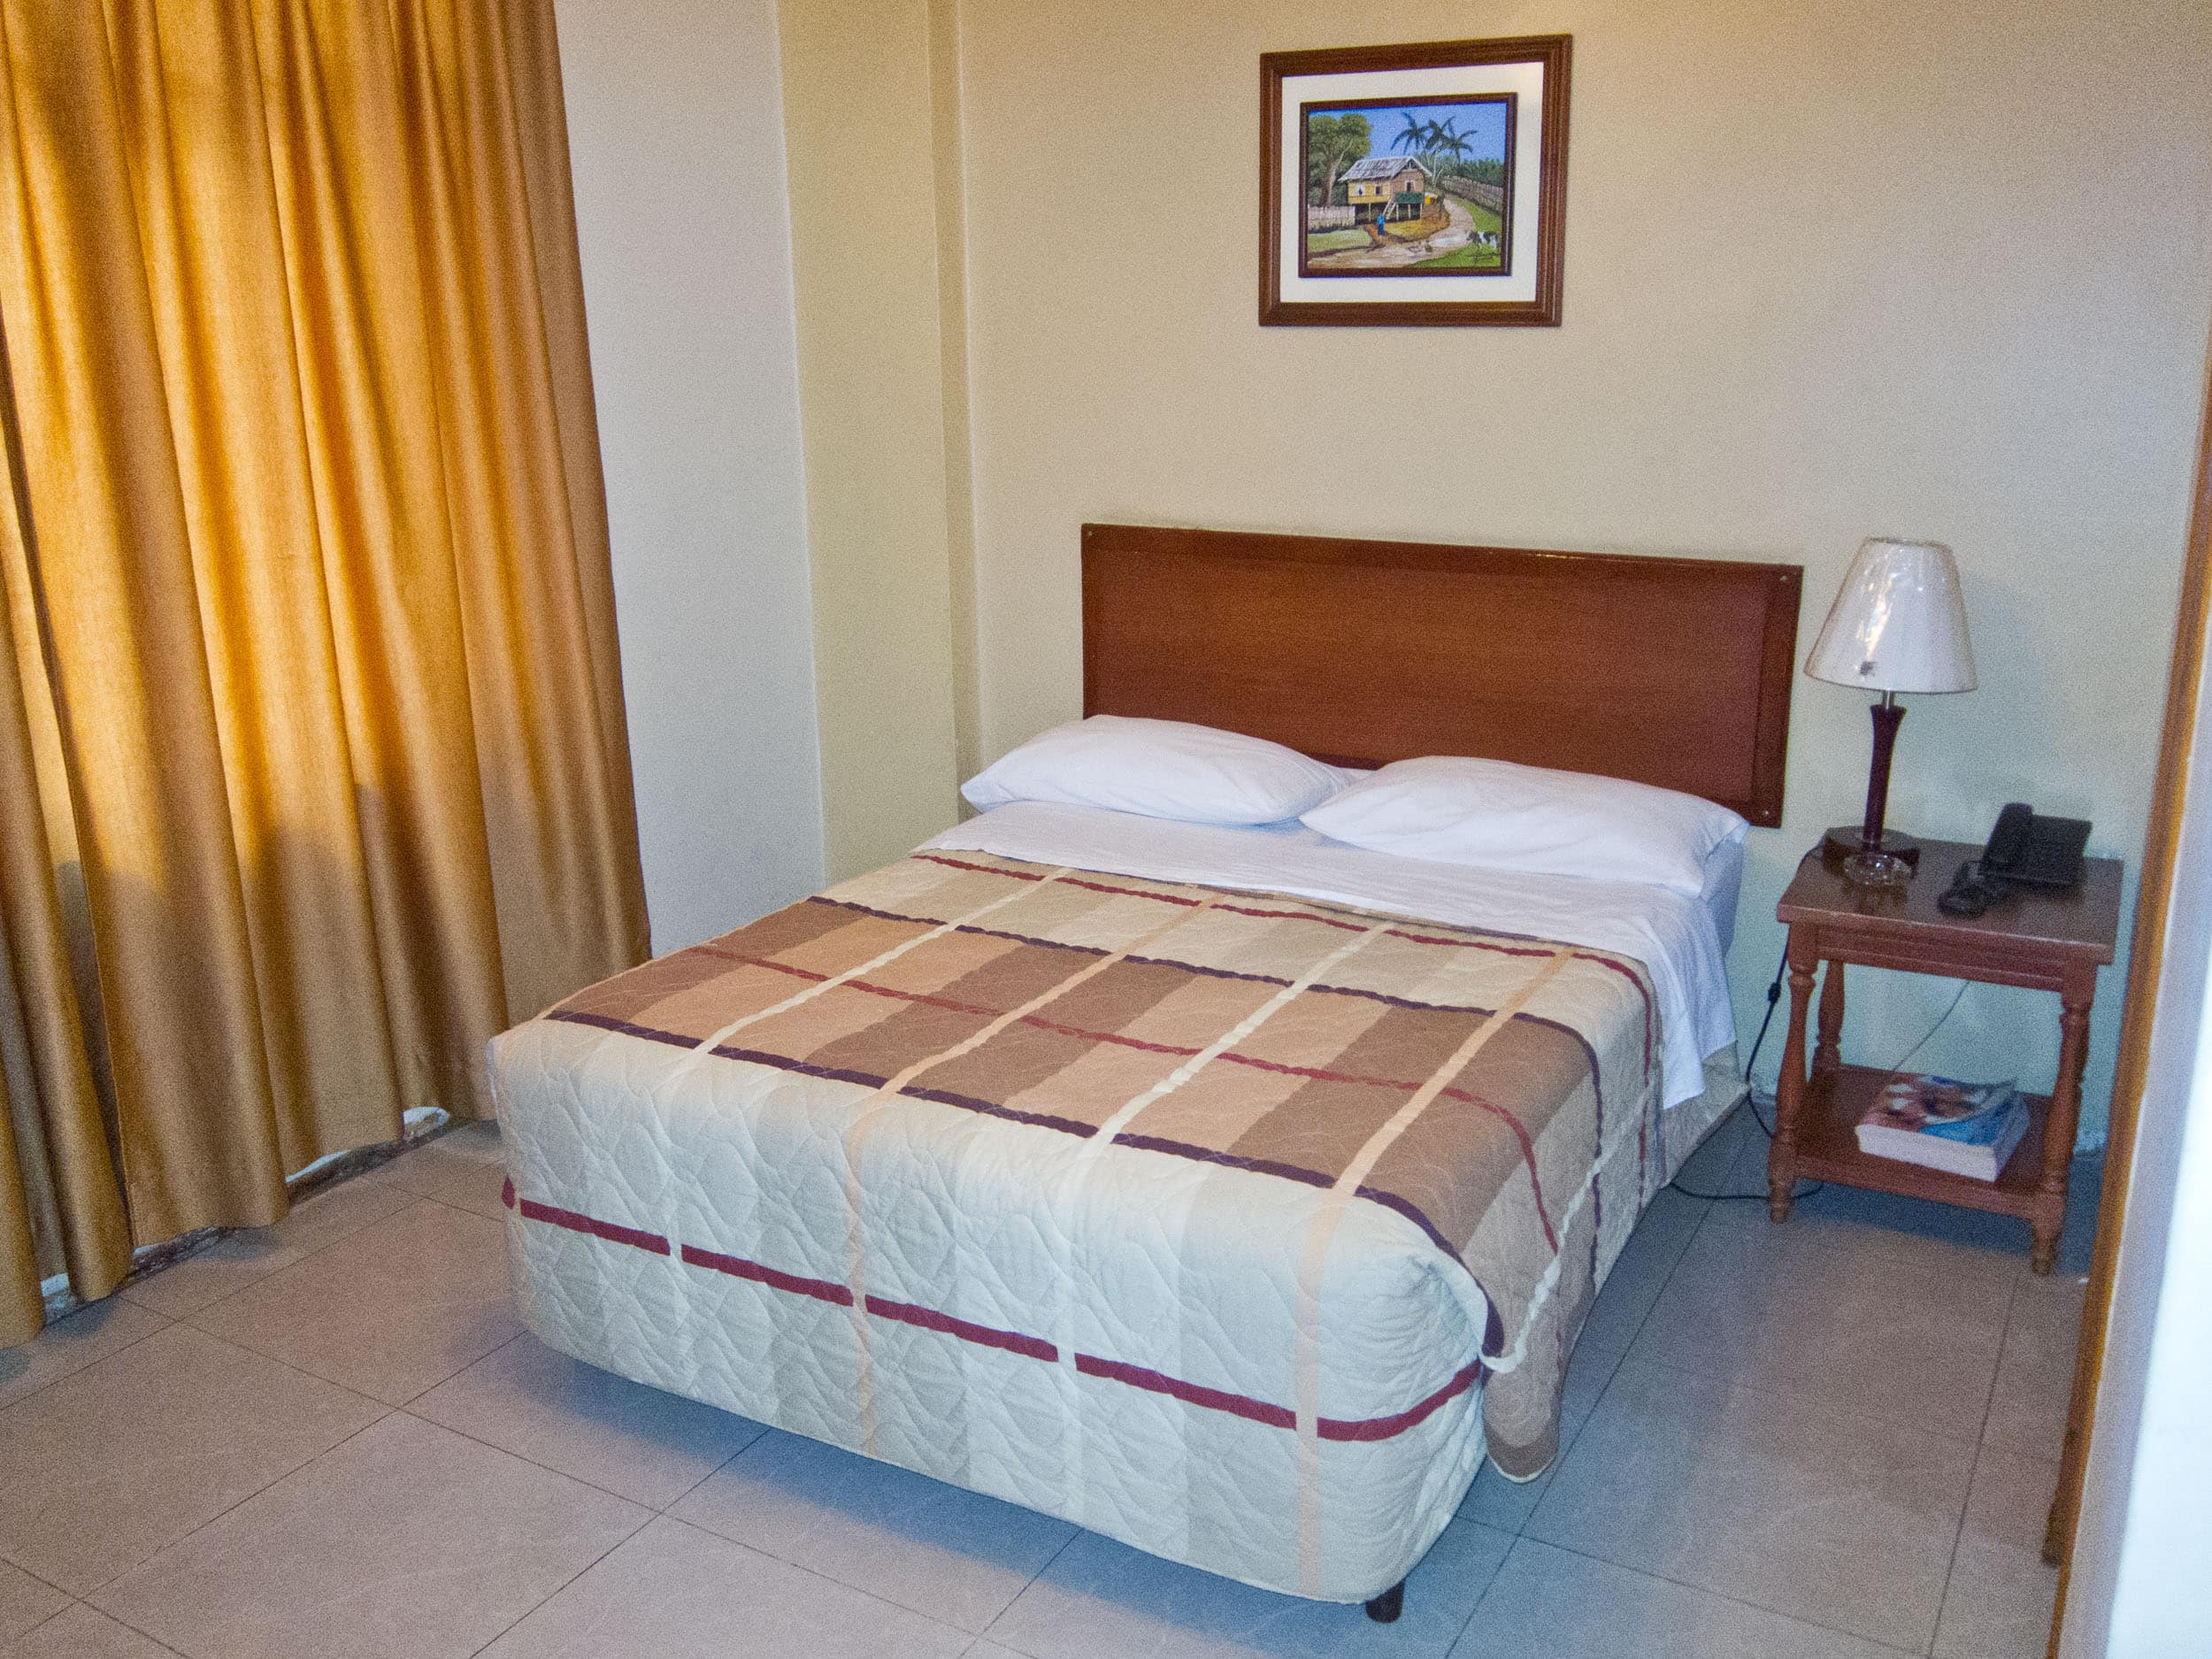 Private room at Hotel Plaza St. Rafael, the editor's pick in our Guayaquil travel guide